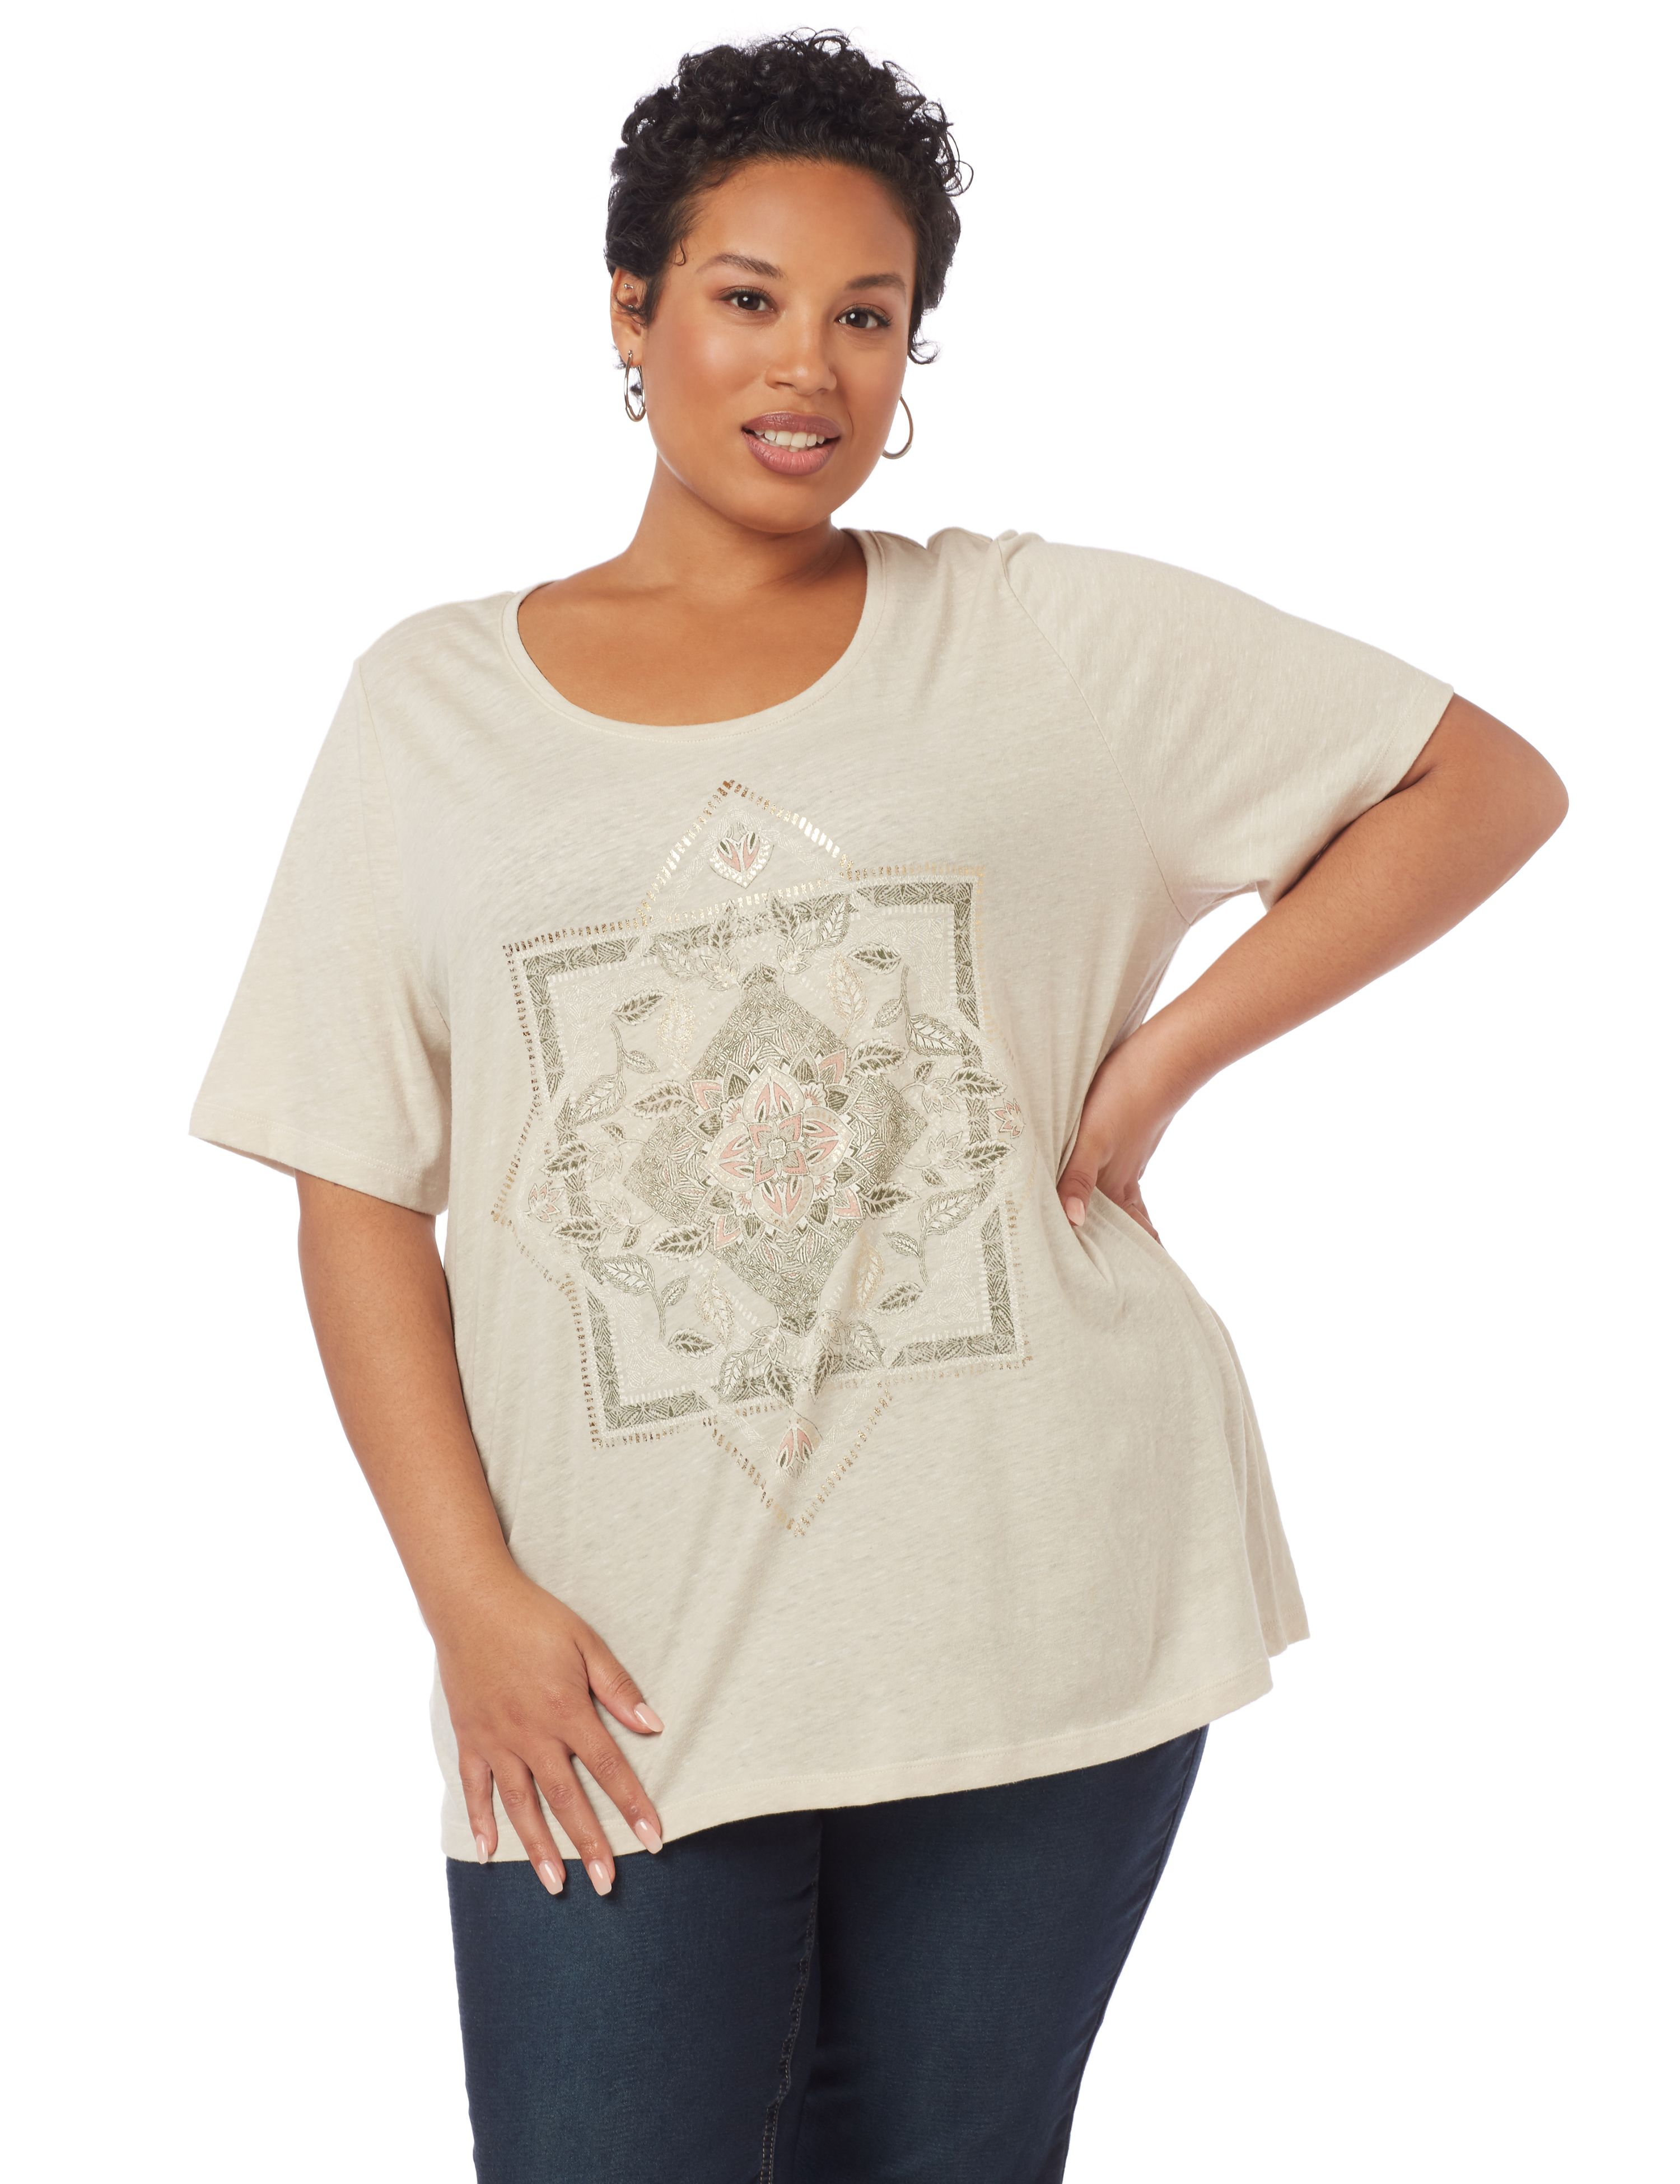 Stay Centered Short-Sleeve Top 1087879 SS SQUARE/TRIANGLE SCREEN MP-300094607